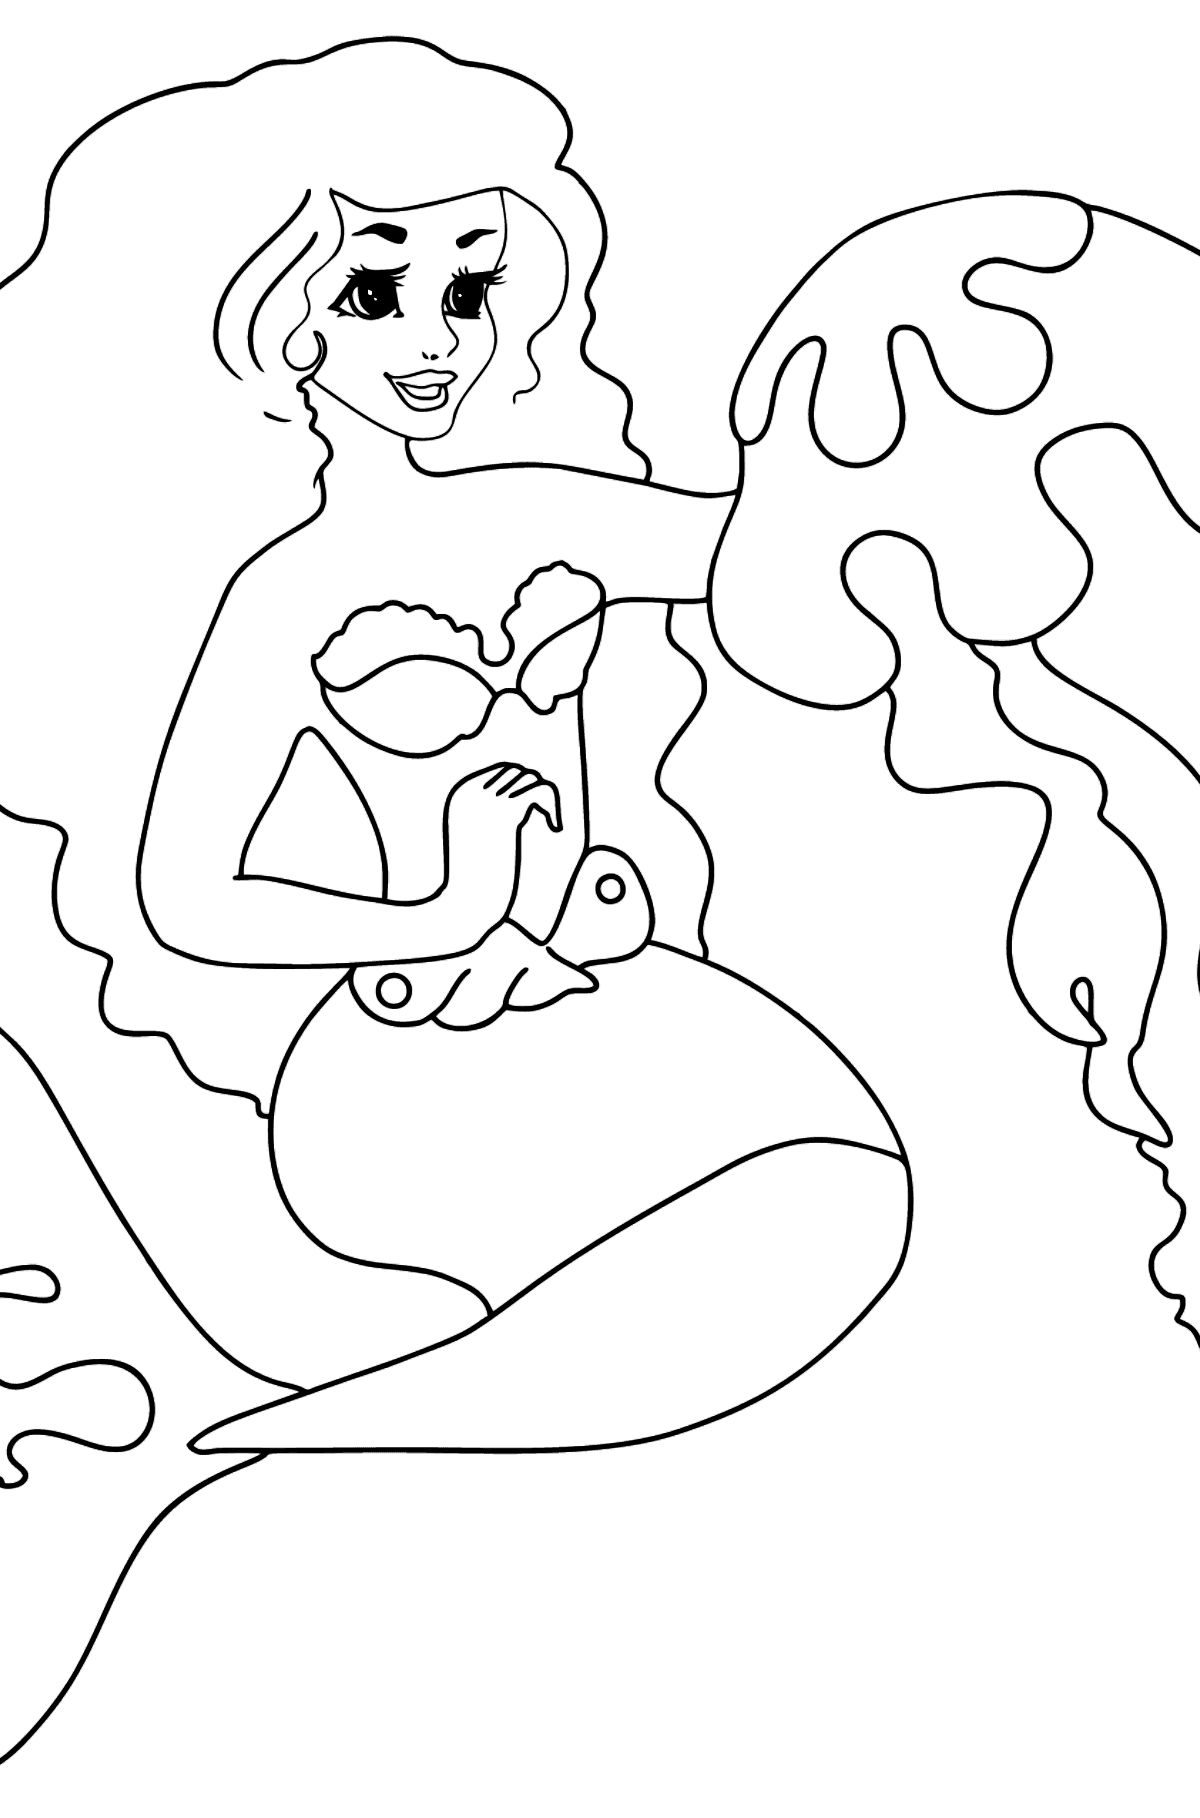 Coloring Page Mermaid and Medusa - Coloring Pages for Kids